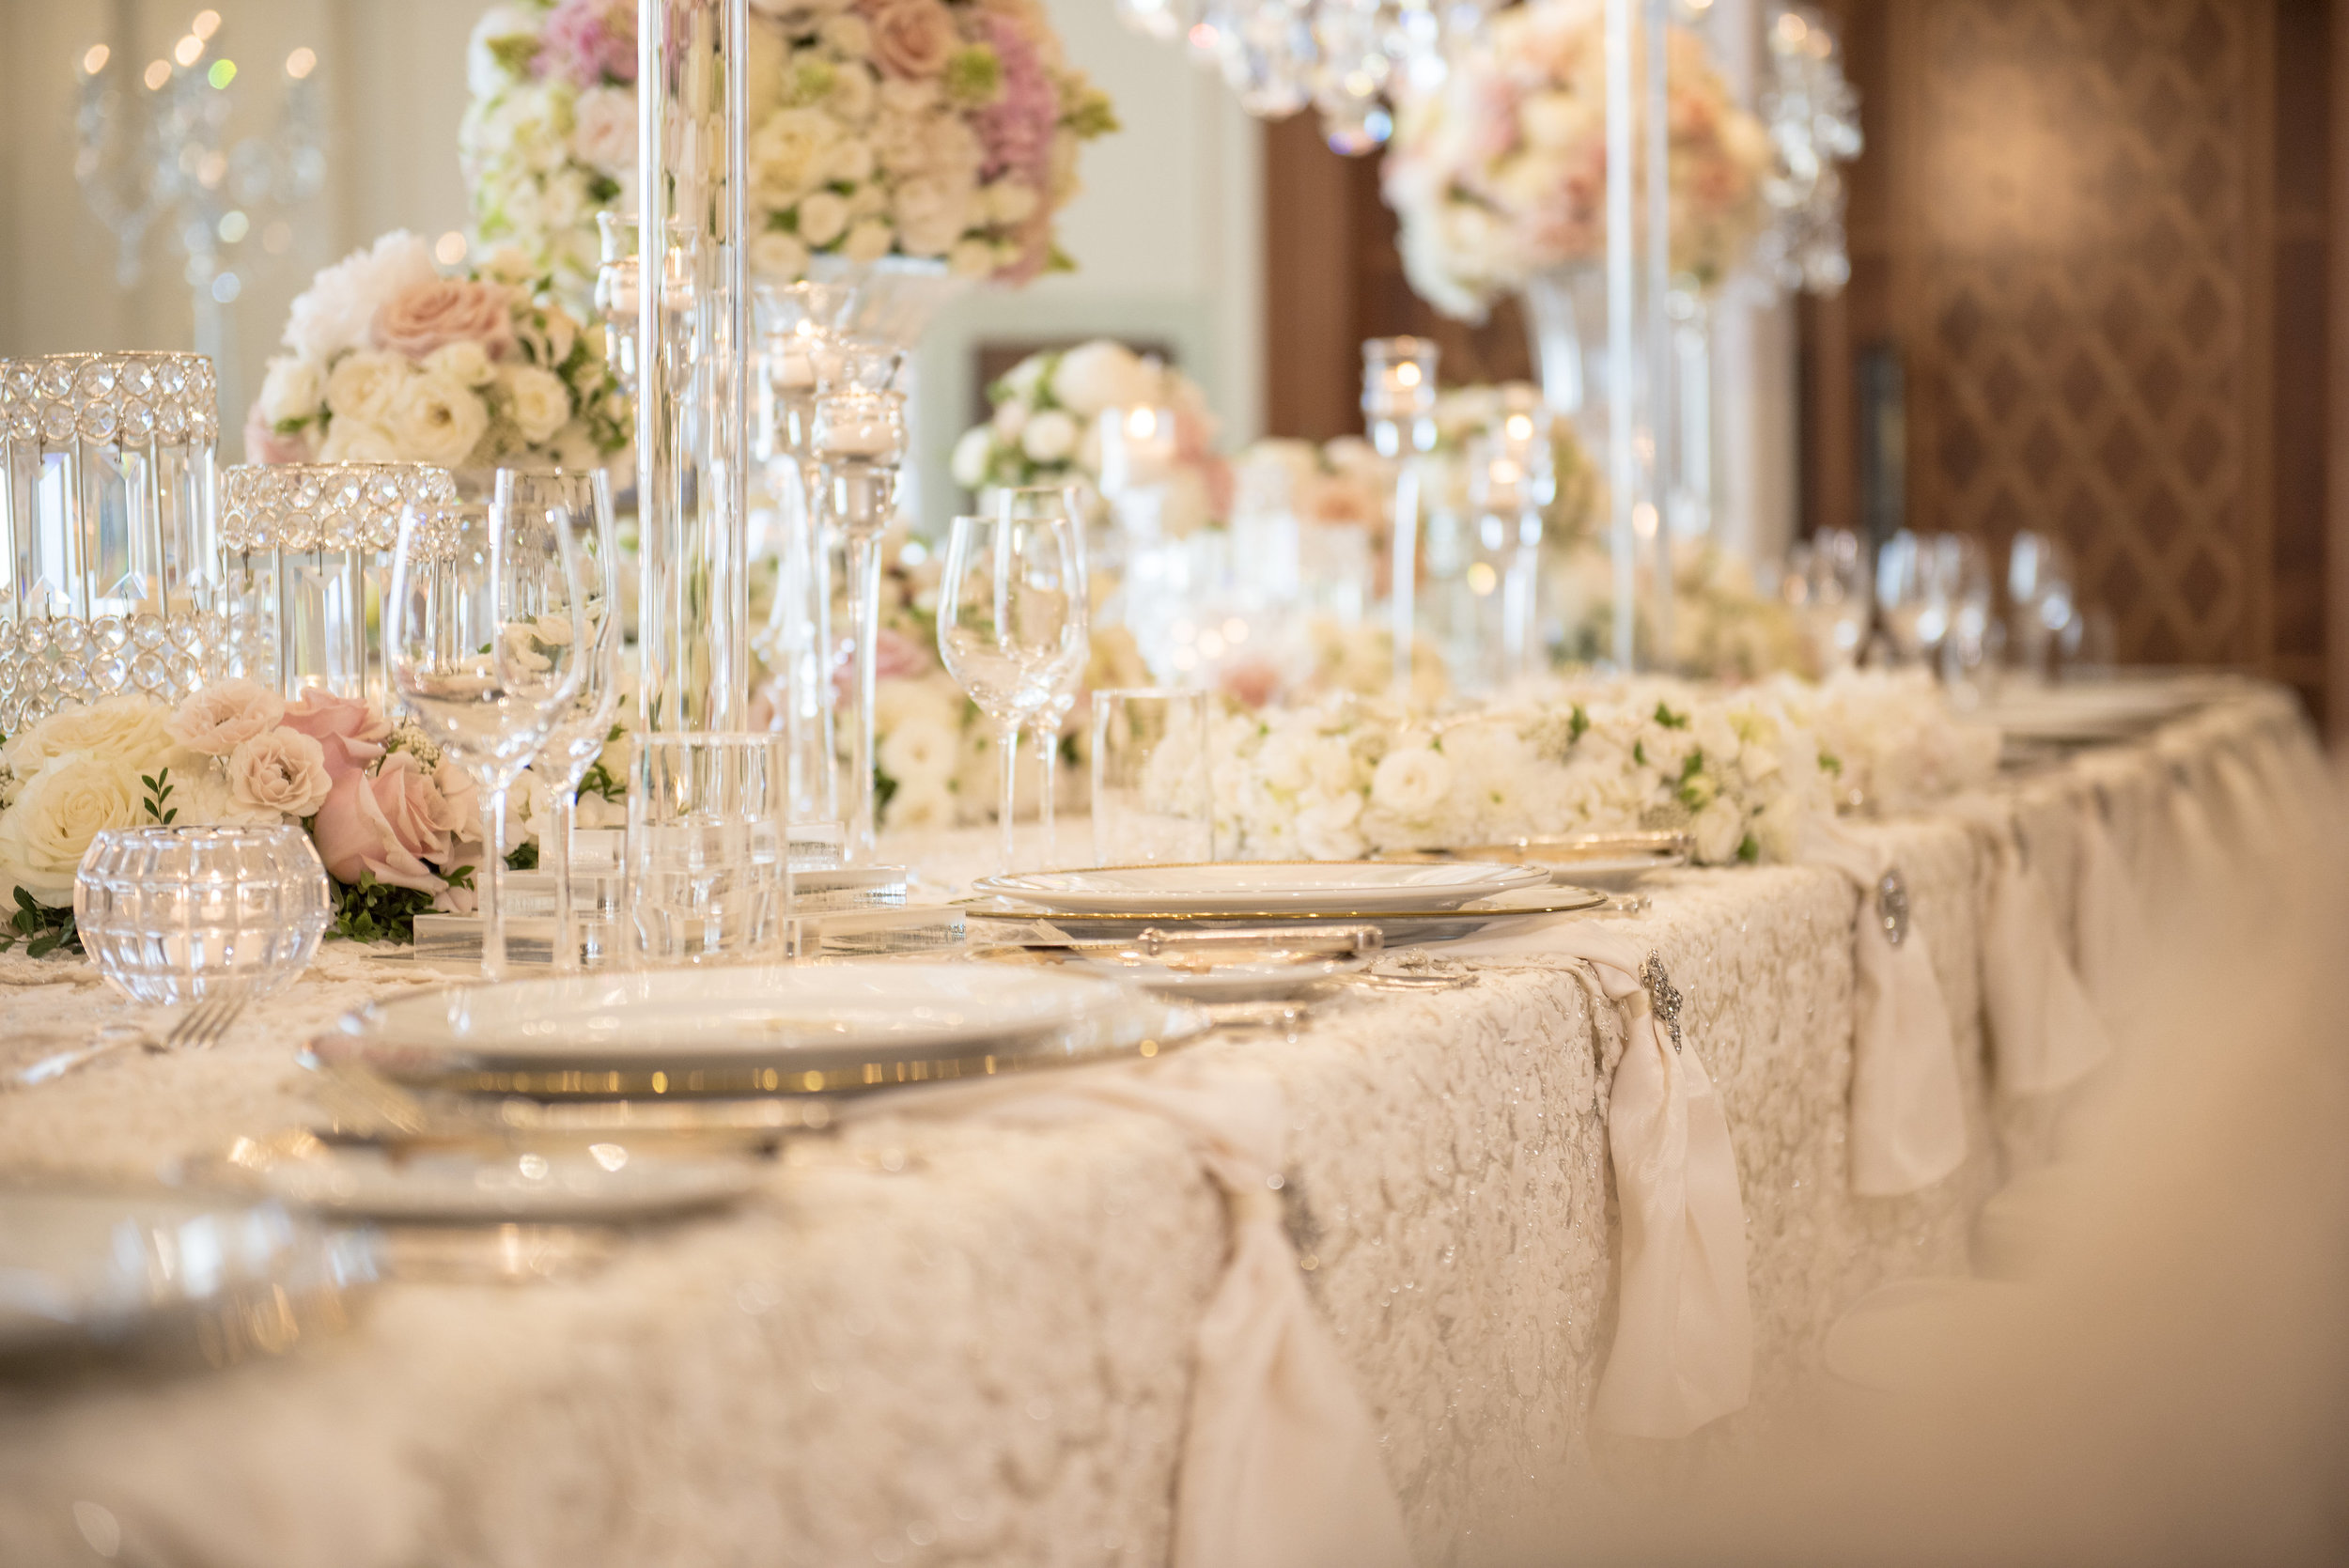 Hire_Ivory_rose_luxury_linen_sydney_wedding_decor_event_Versace_Decor_table_setting_gold_charger_plates_crystal.jpg